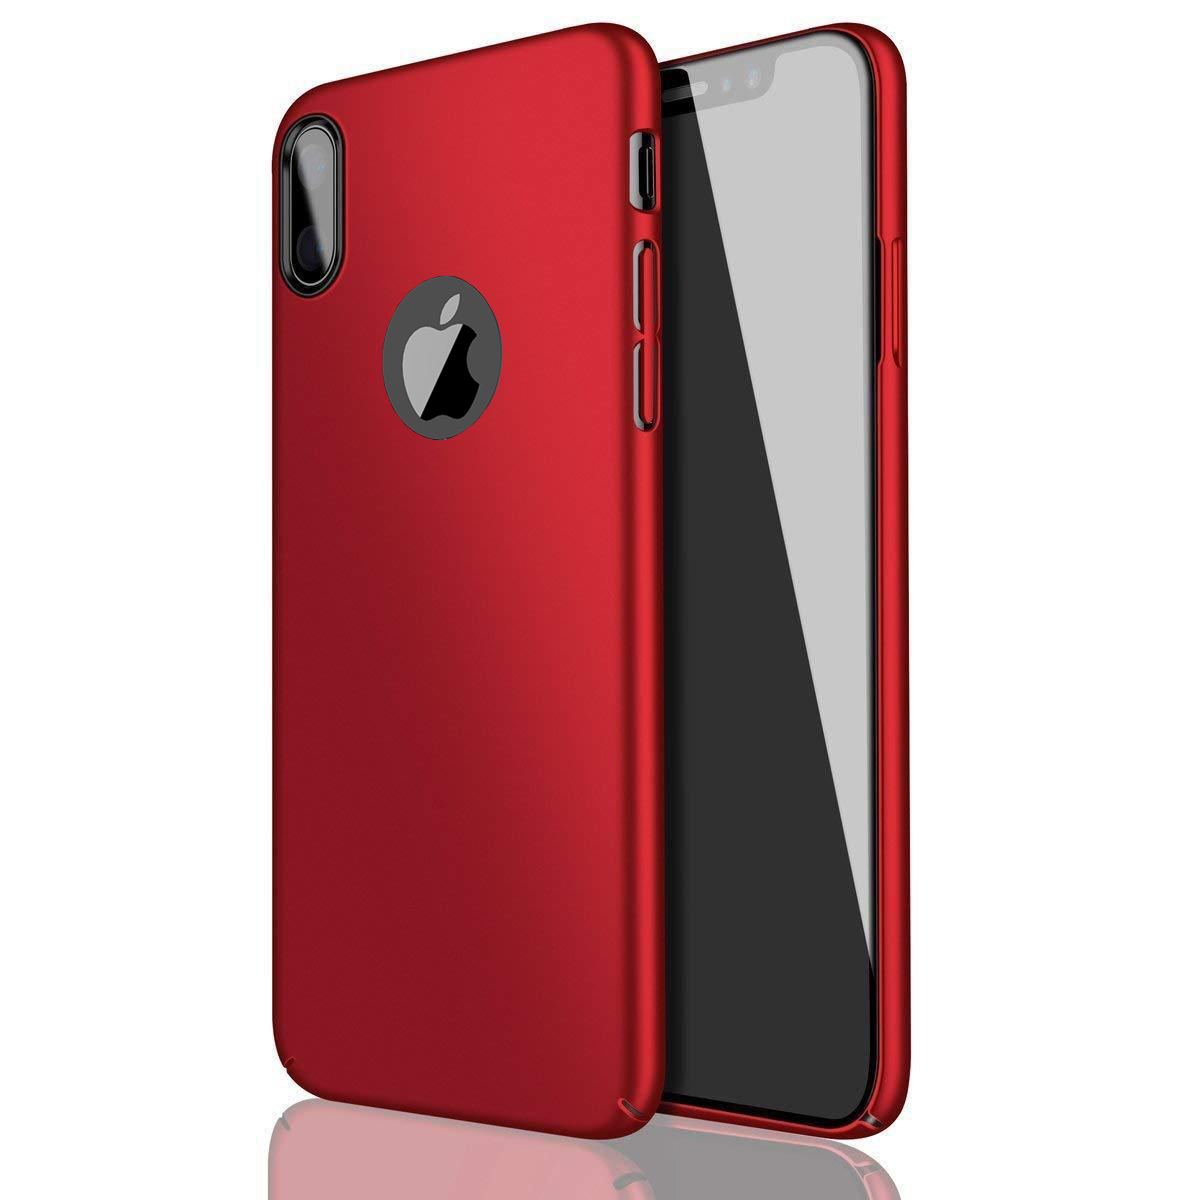 Shockproof-Hard-Back-Ultra-Thin-Slim-New-Bumper-Case-Cover-For-Apple-iPhone-X-XR miniatuur 27